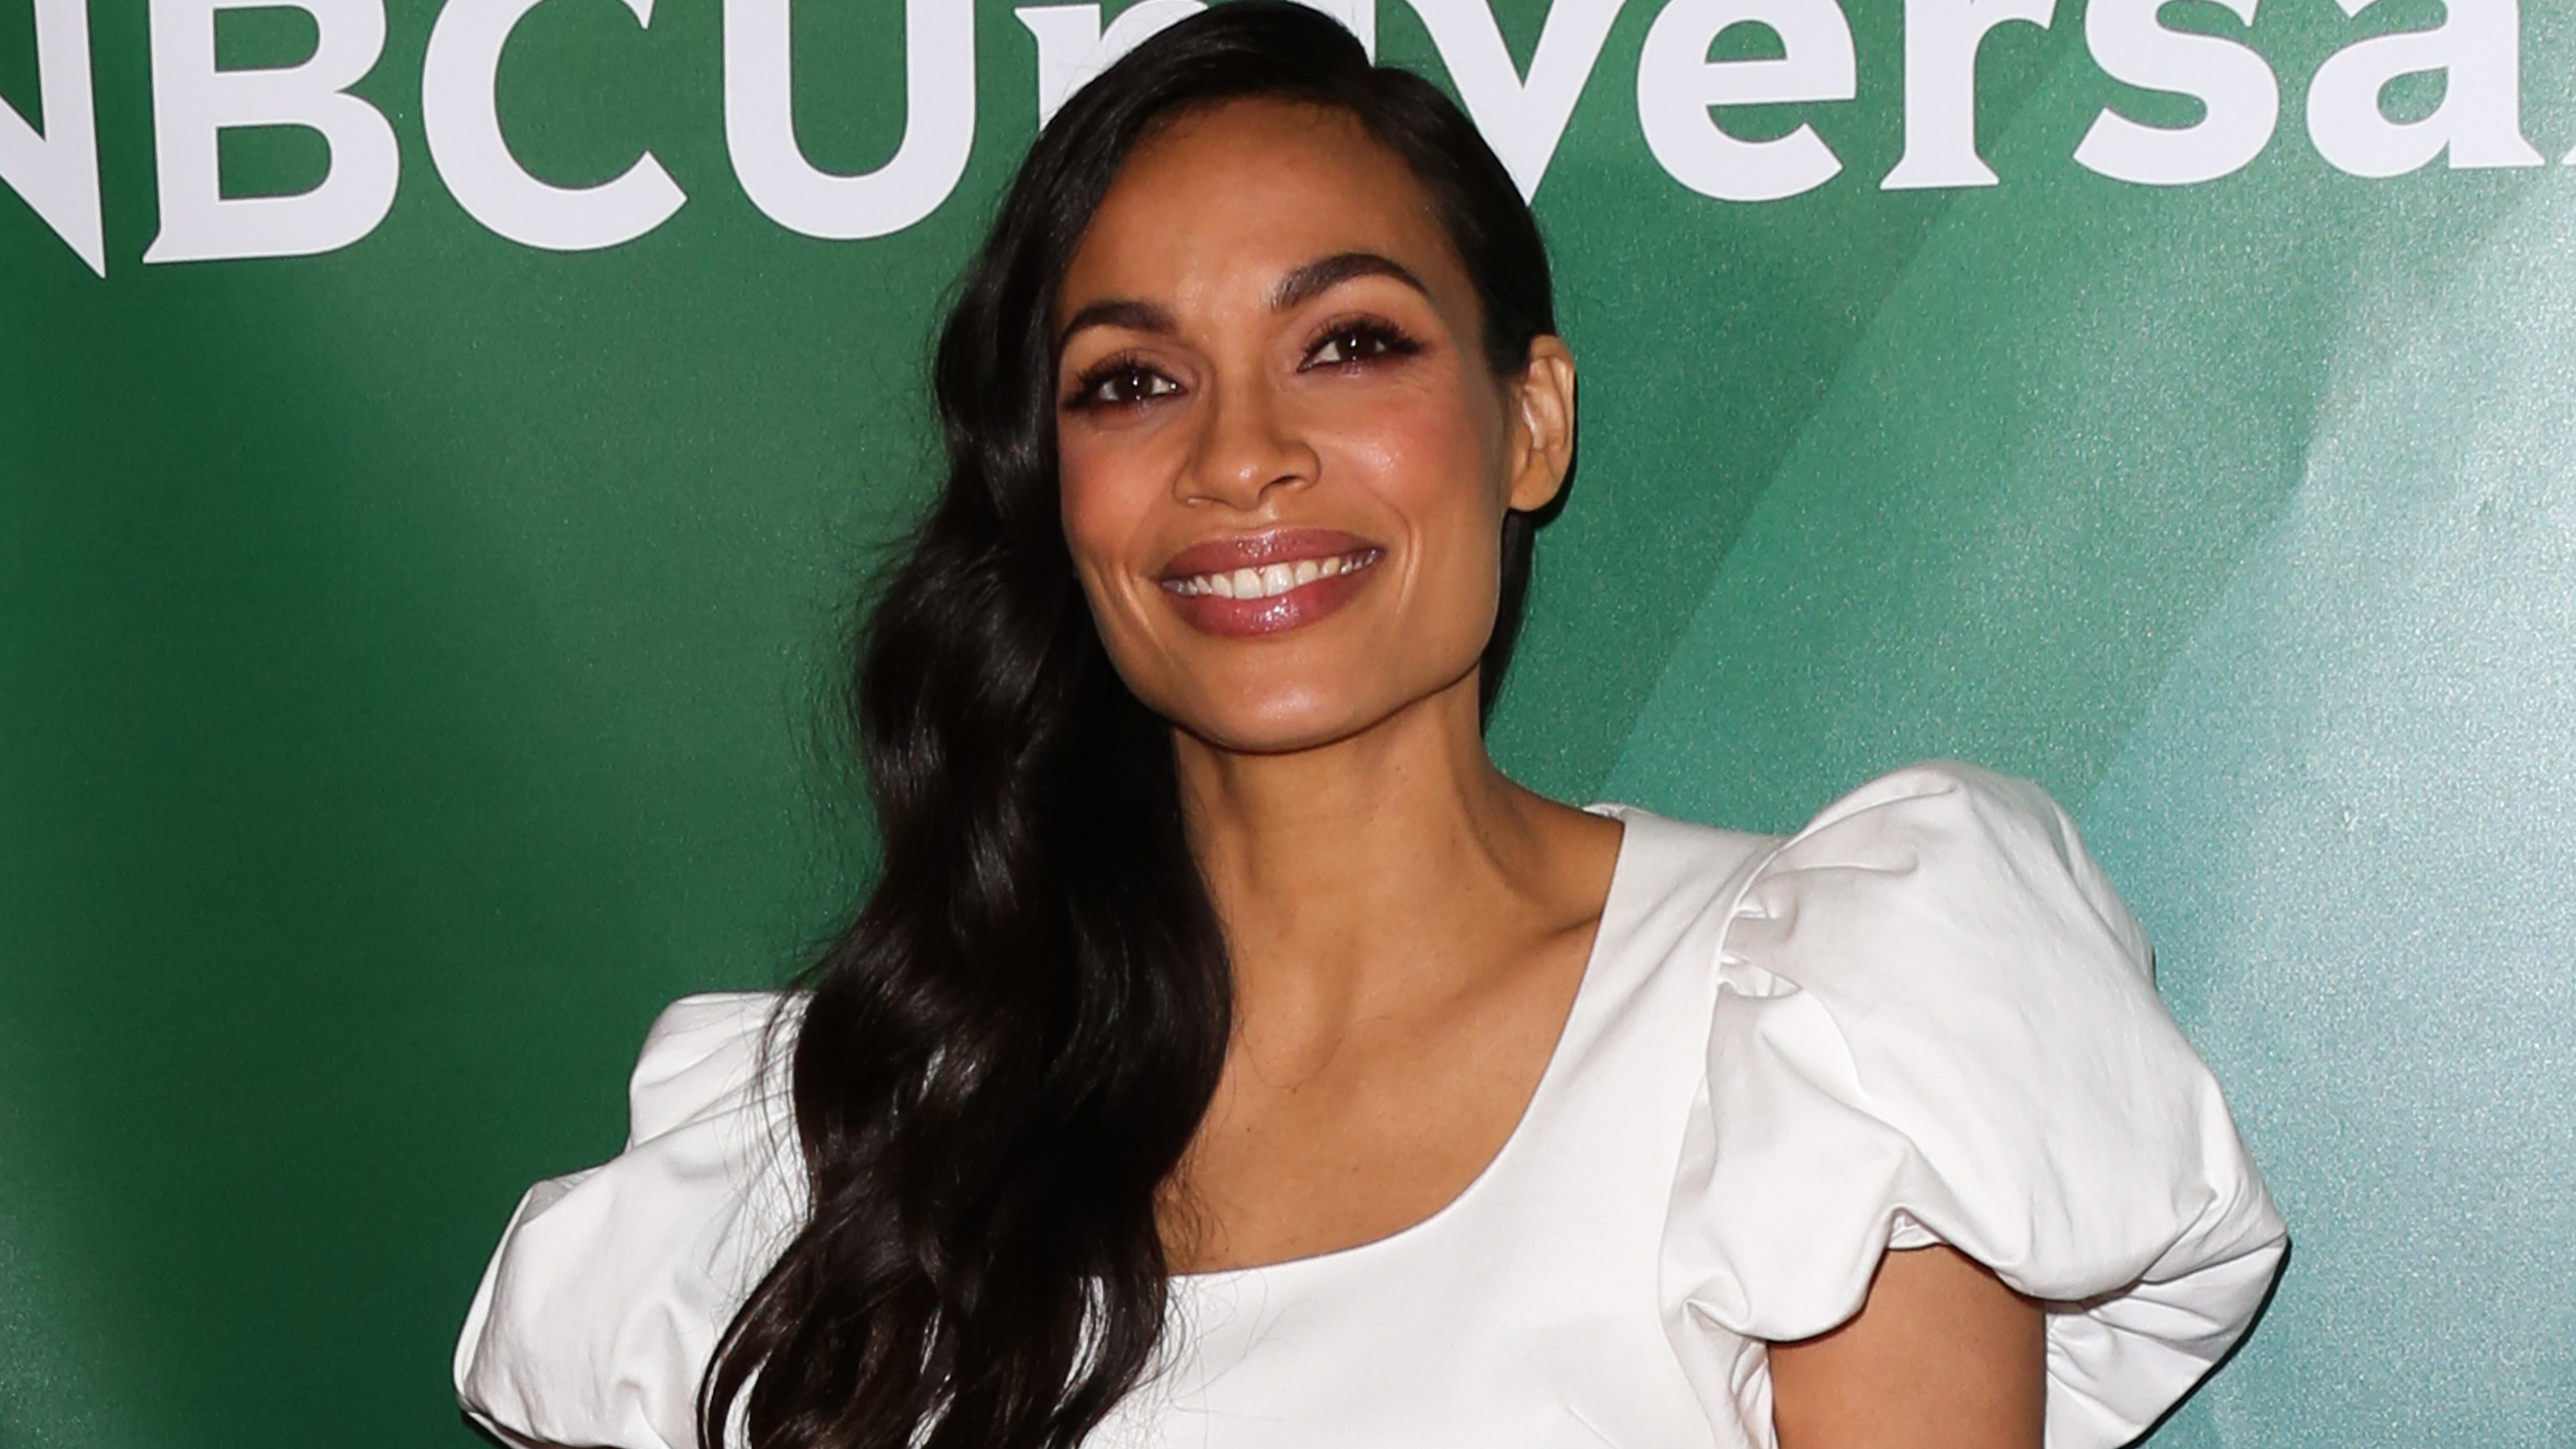 Westlake Legal Group Rosario-Dawson Rosario Dawson says it's 'scary' dating a politician Nate Day fox-news/person/cory-booker fox-news/entertainment/events/couples fox-news/entertainment/celebrity-news fox-news/entertainment fox news fnc/entertainment fnc cc26c409-8173-565a-919d-f3066d208fa6 article